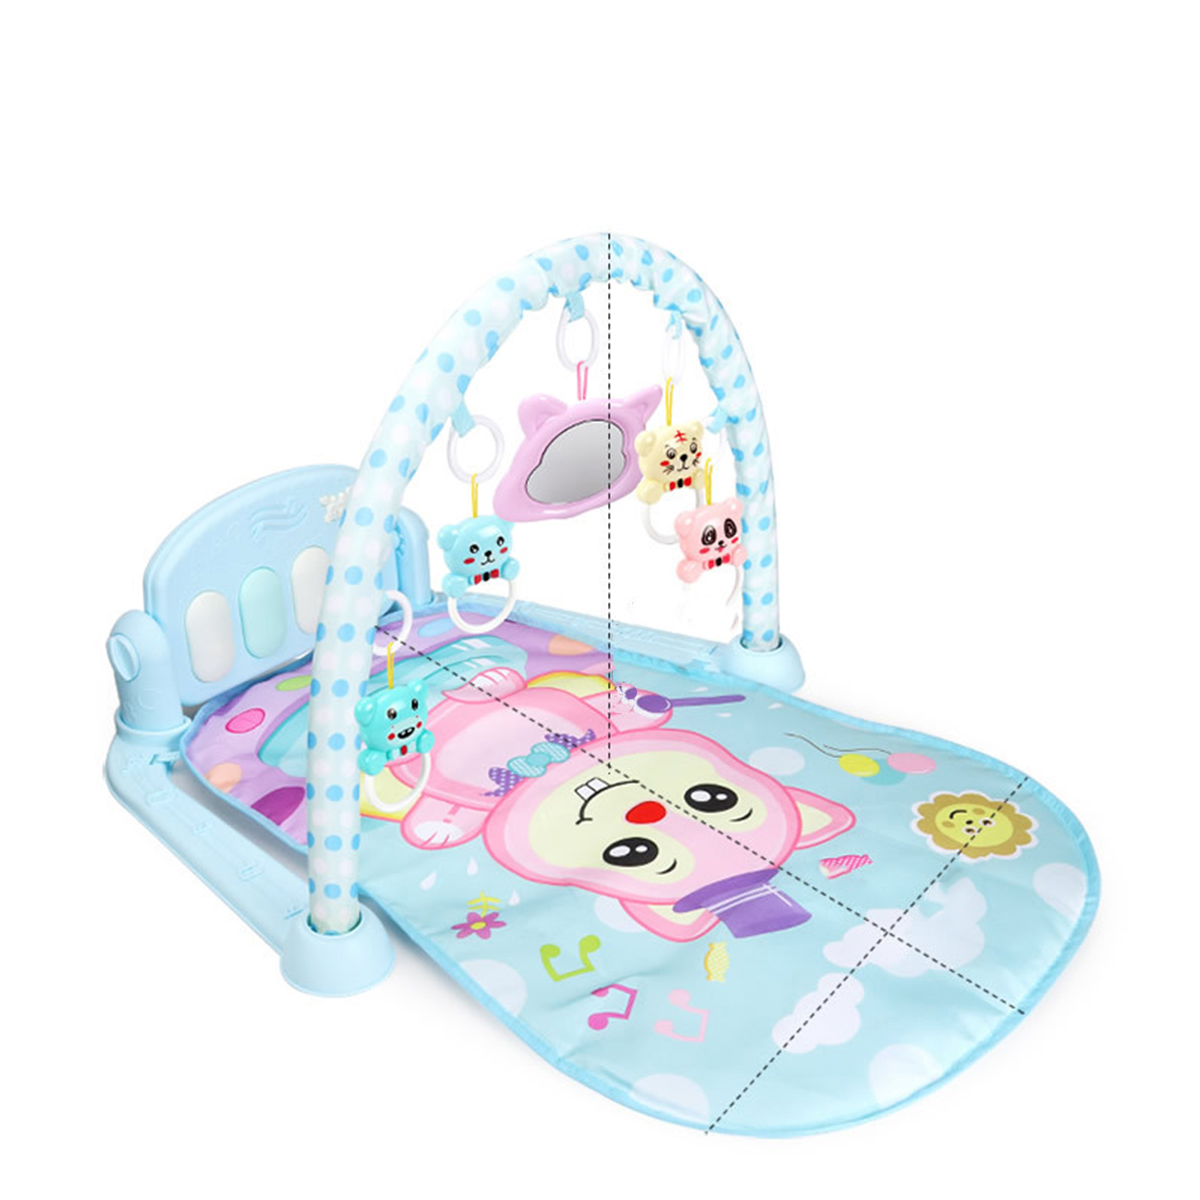 Baby Mini Musical Piano Carpet Educational Toys For 0-36 Months